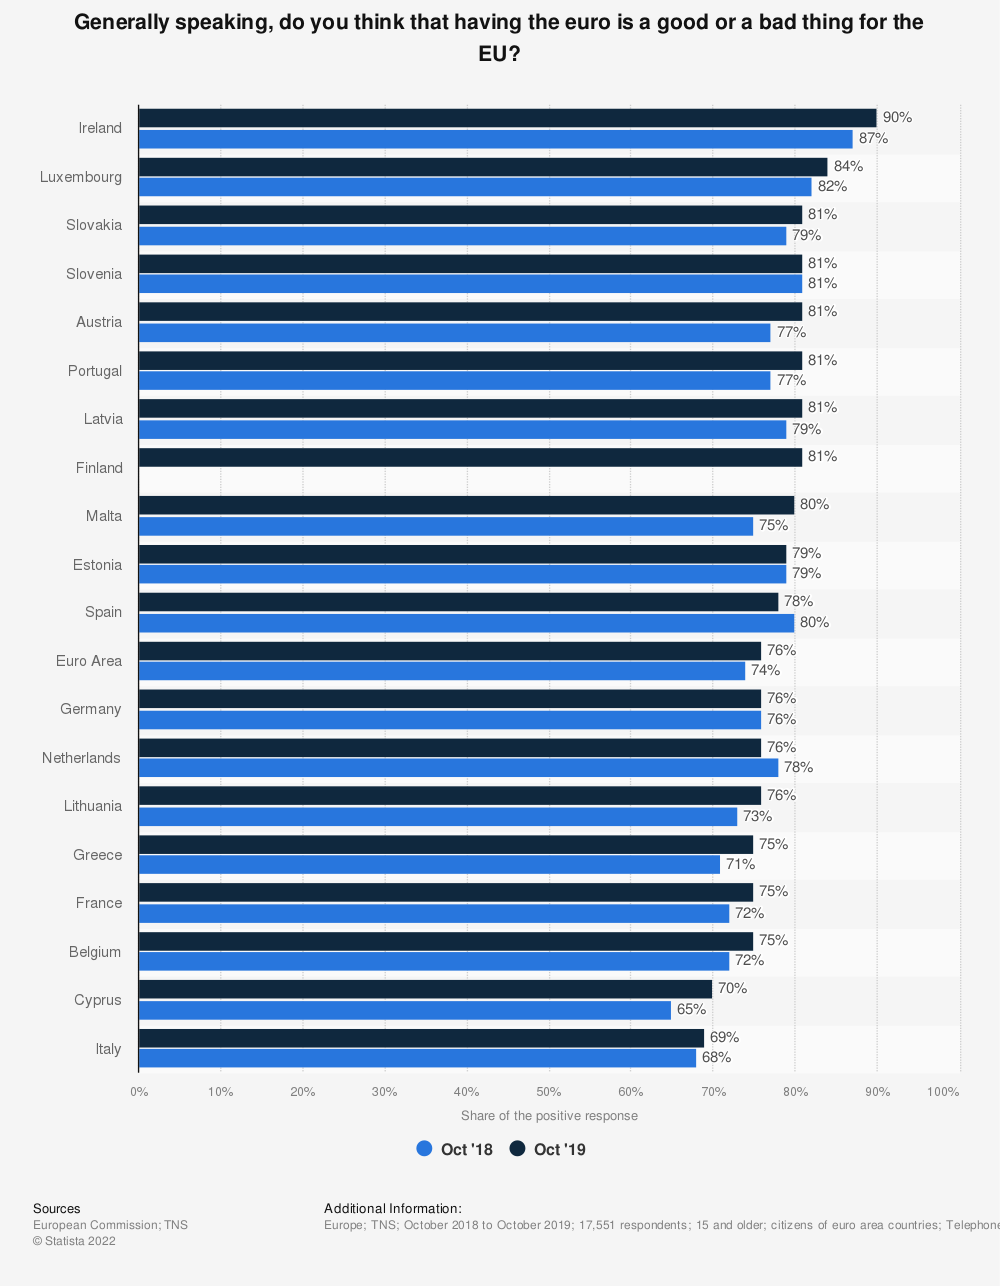 Statistic: Generally speaking, do you think that having the euro is a good or a bad thing for the EU? | Statista